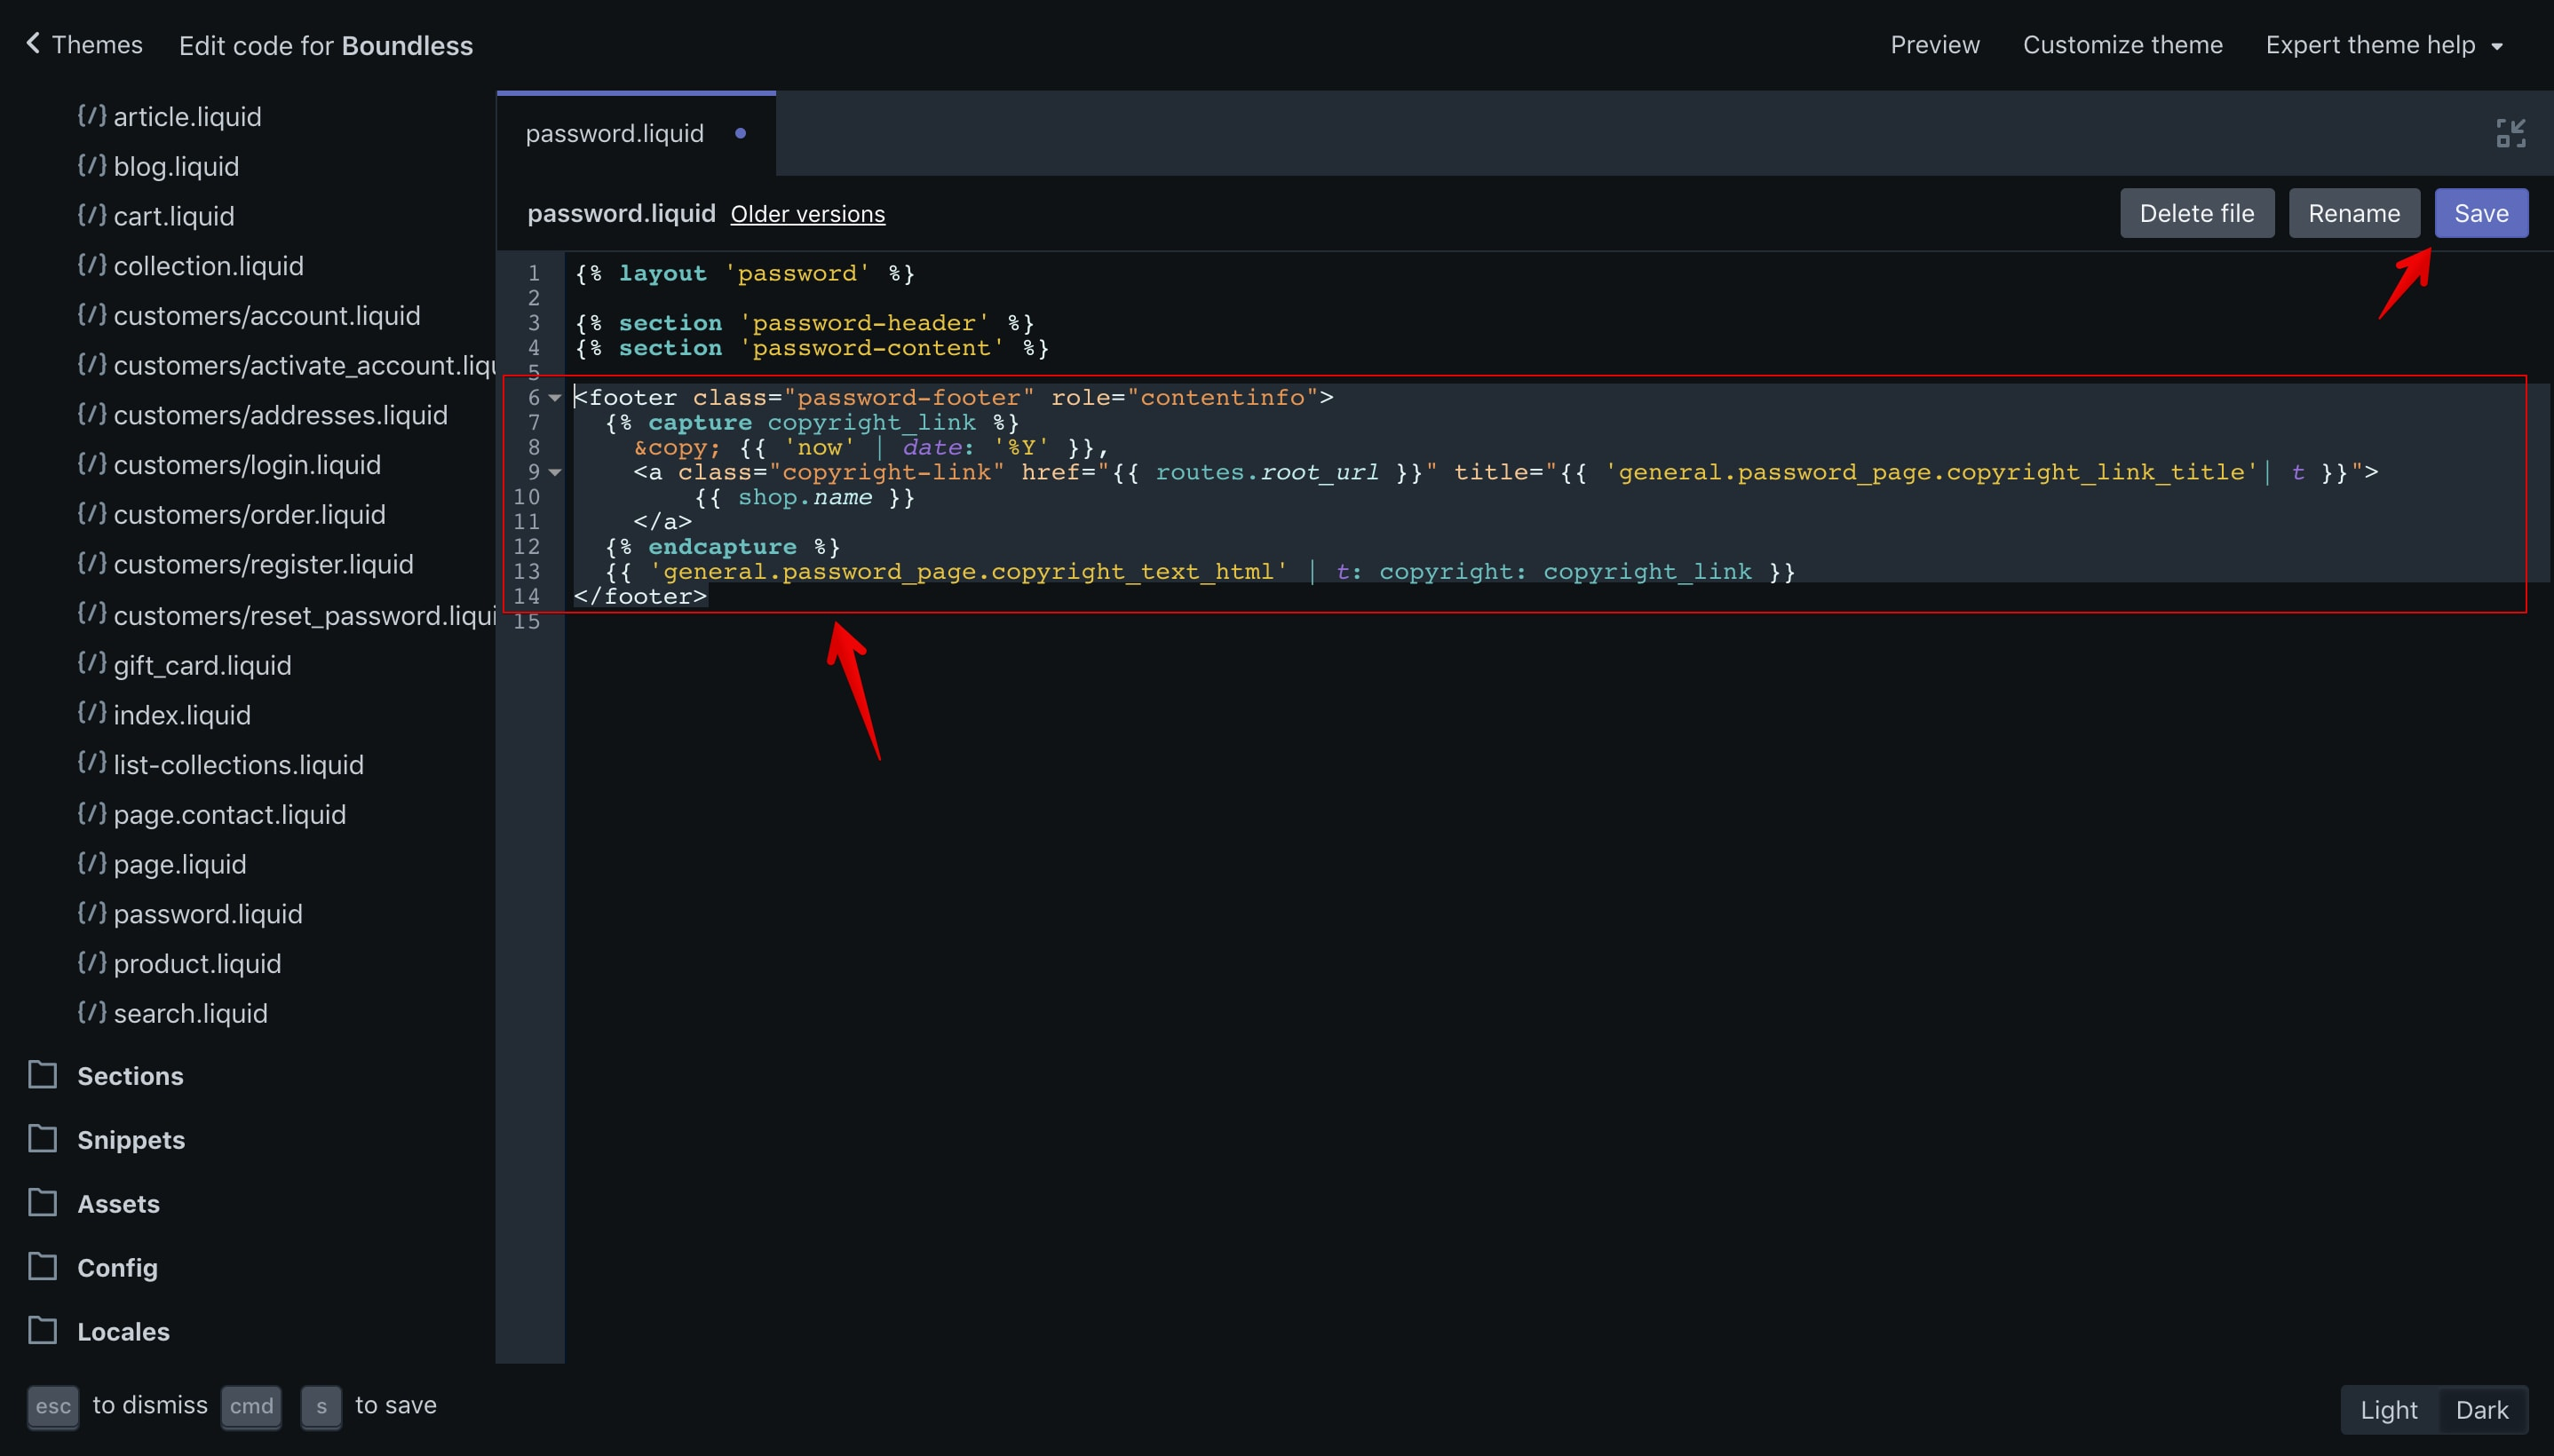 Boundless theme copyright code selection in the code editor.